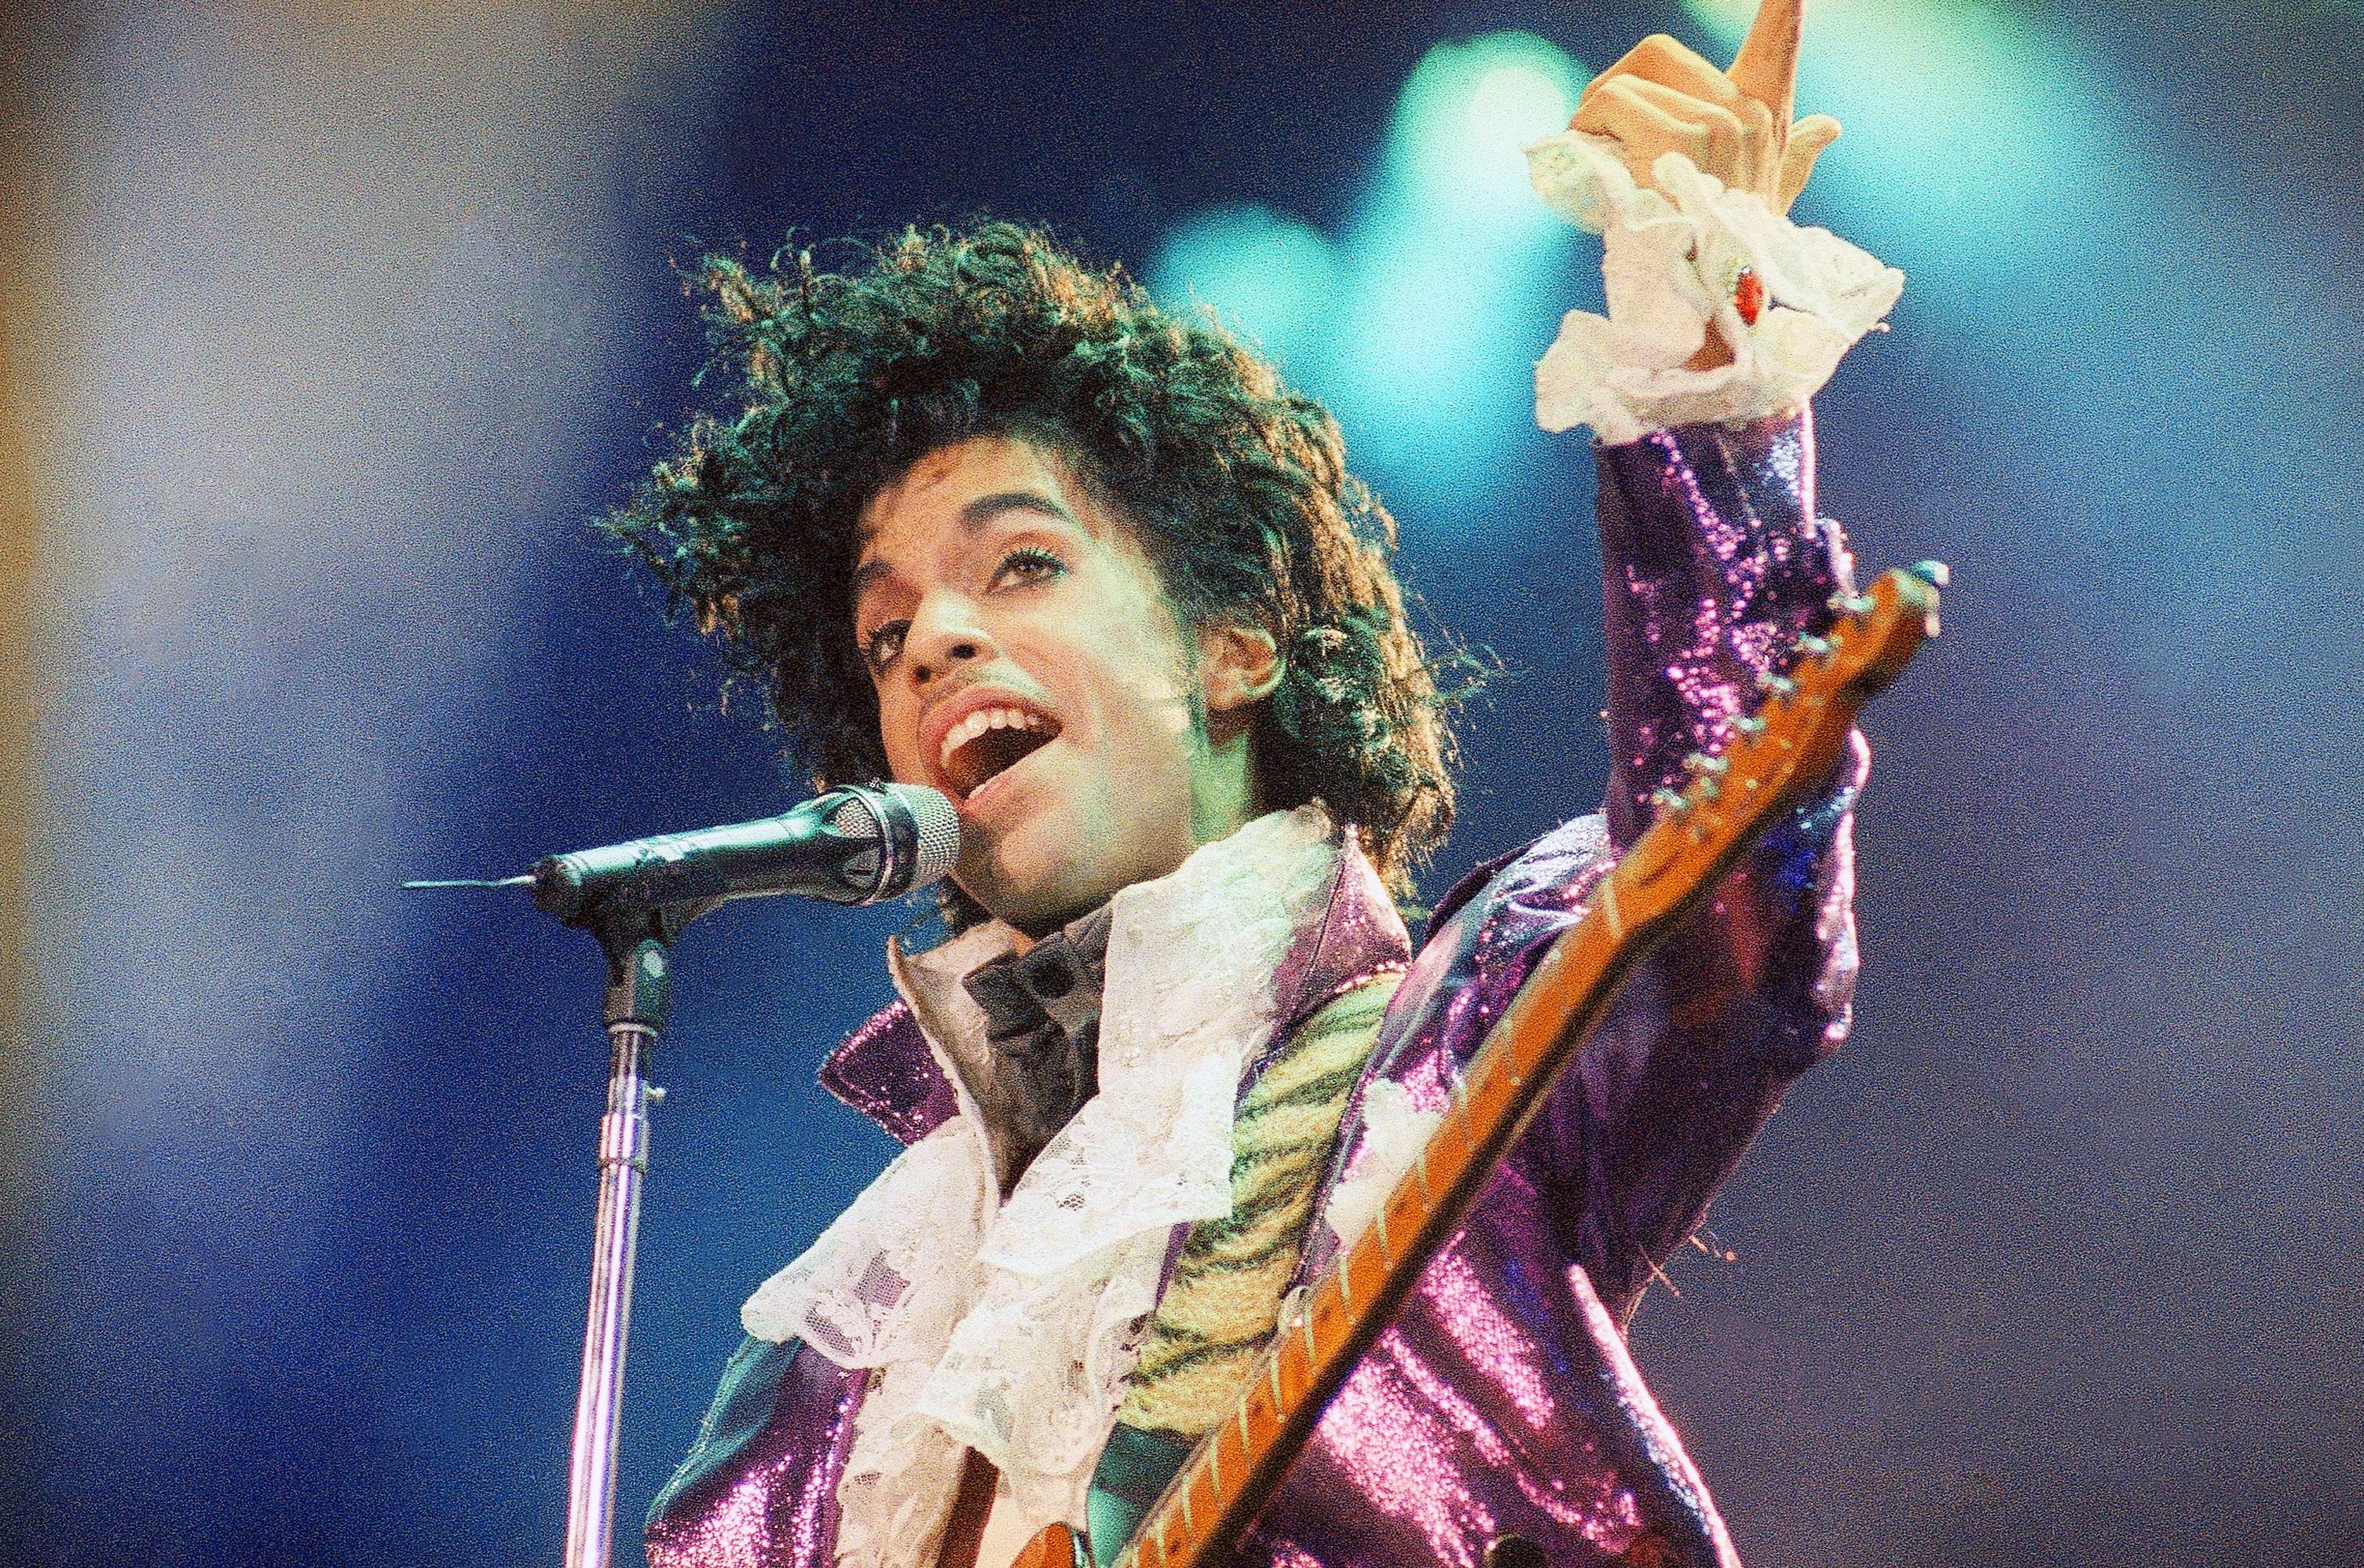 Prince death: Authorities investigating whether musician died of an overdose